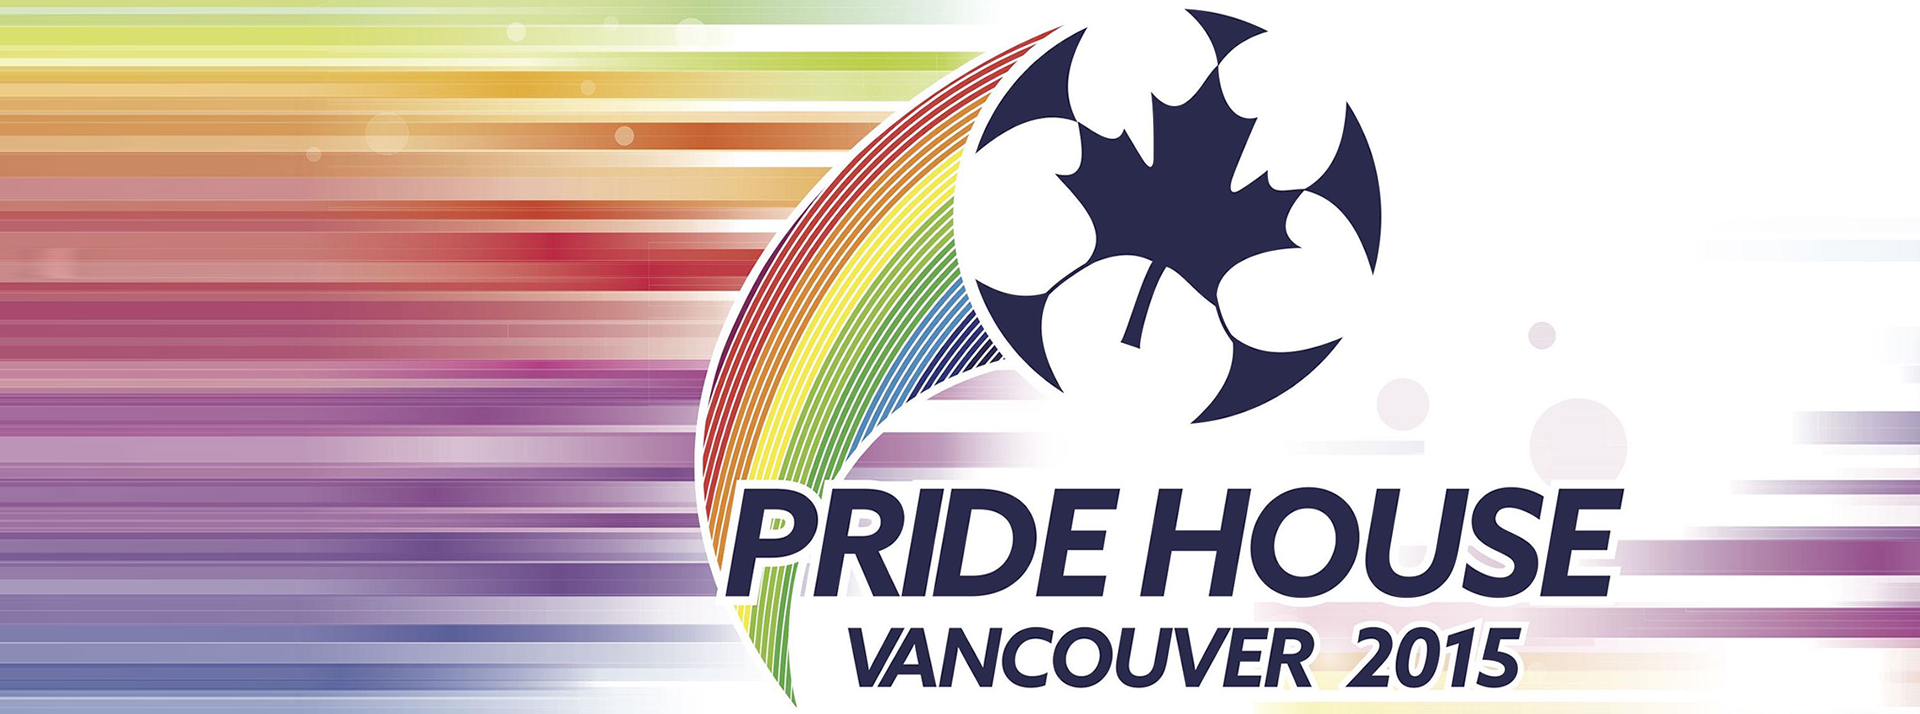 The first Pride House at a major women's tournament